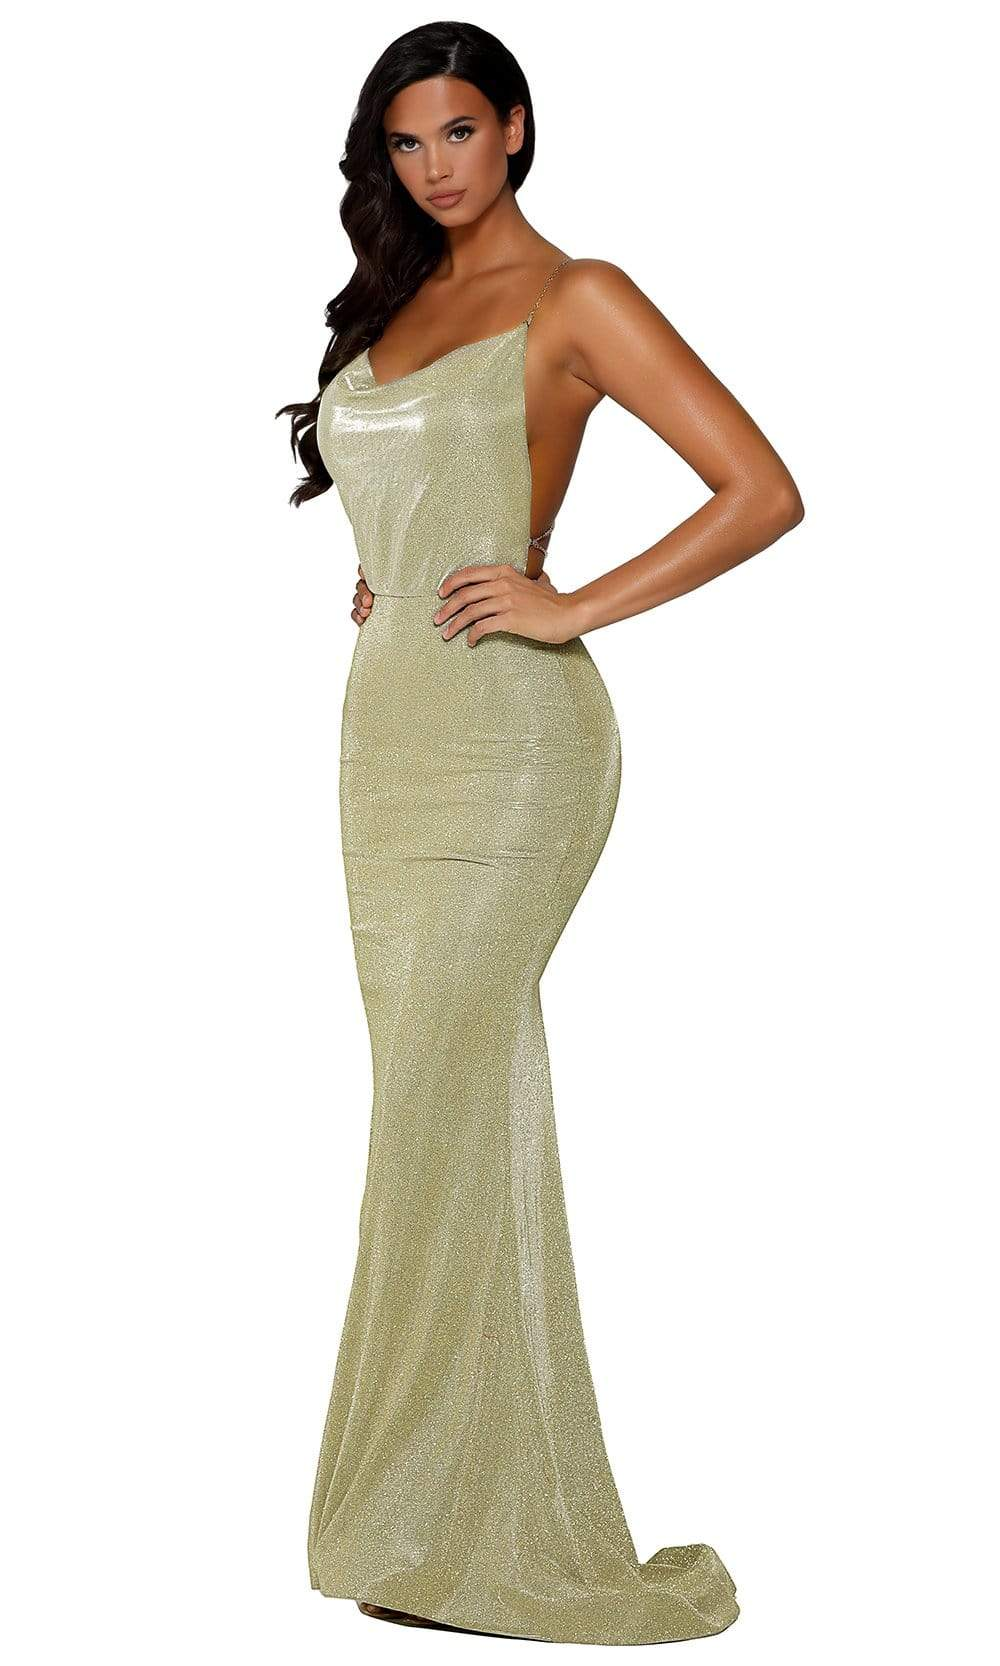 Portia and Scarlett - PS6343 Cowl Neck Metallic Strapped Mermaid Gown from Portia and Scarlett